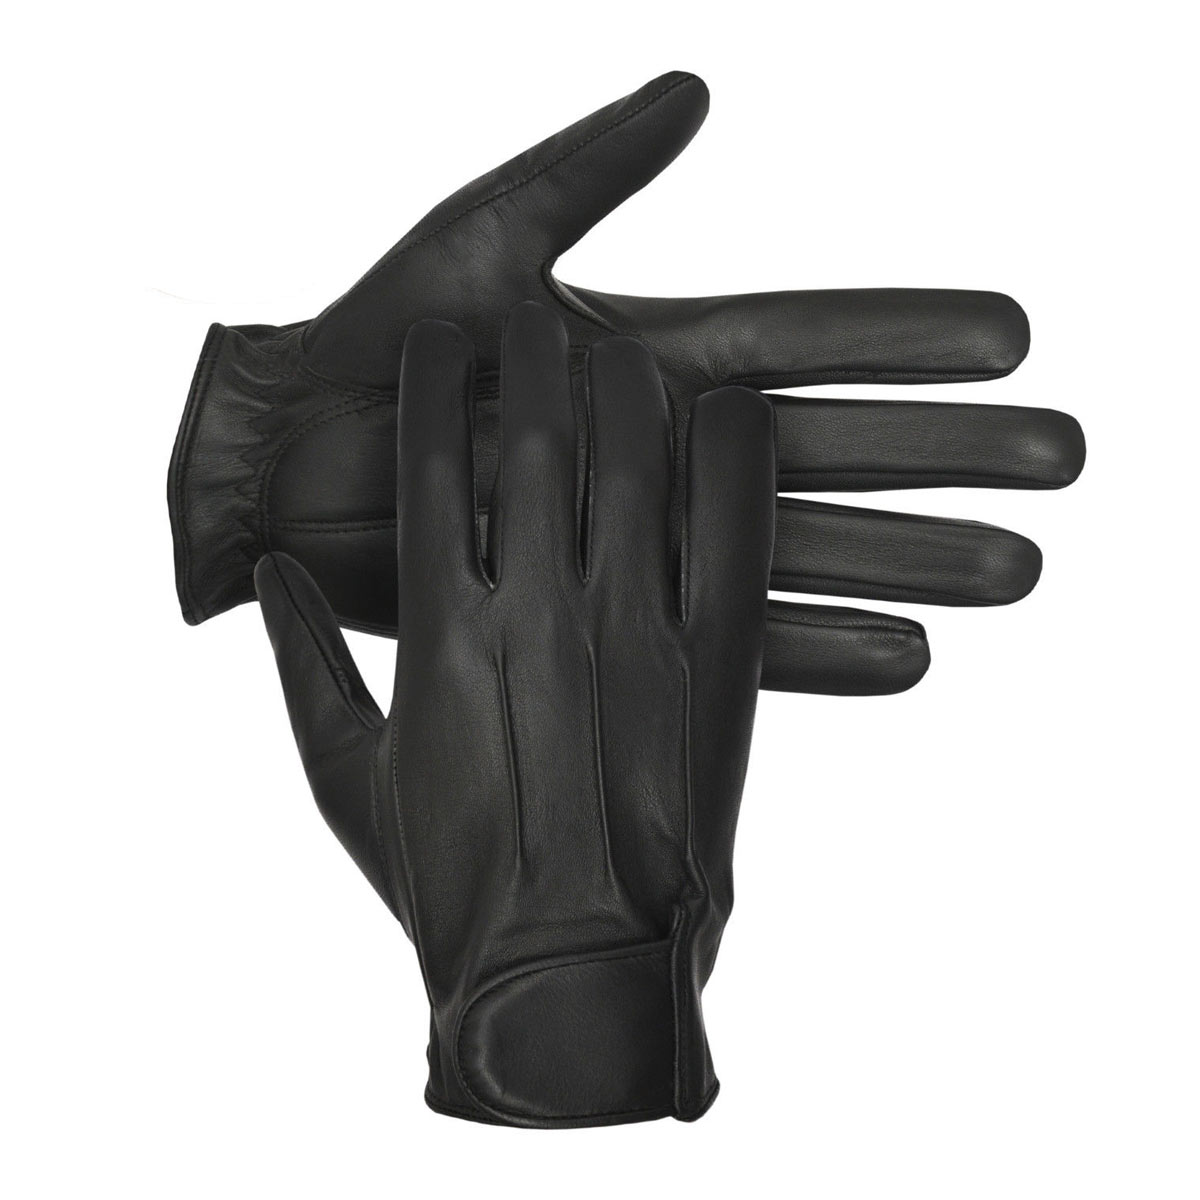 Driving gloves yahoo answers -  13 05